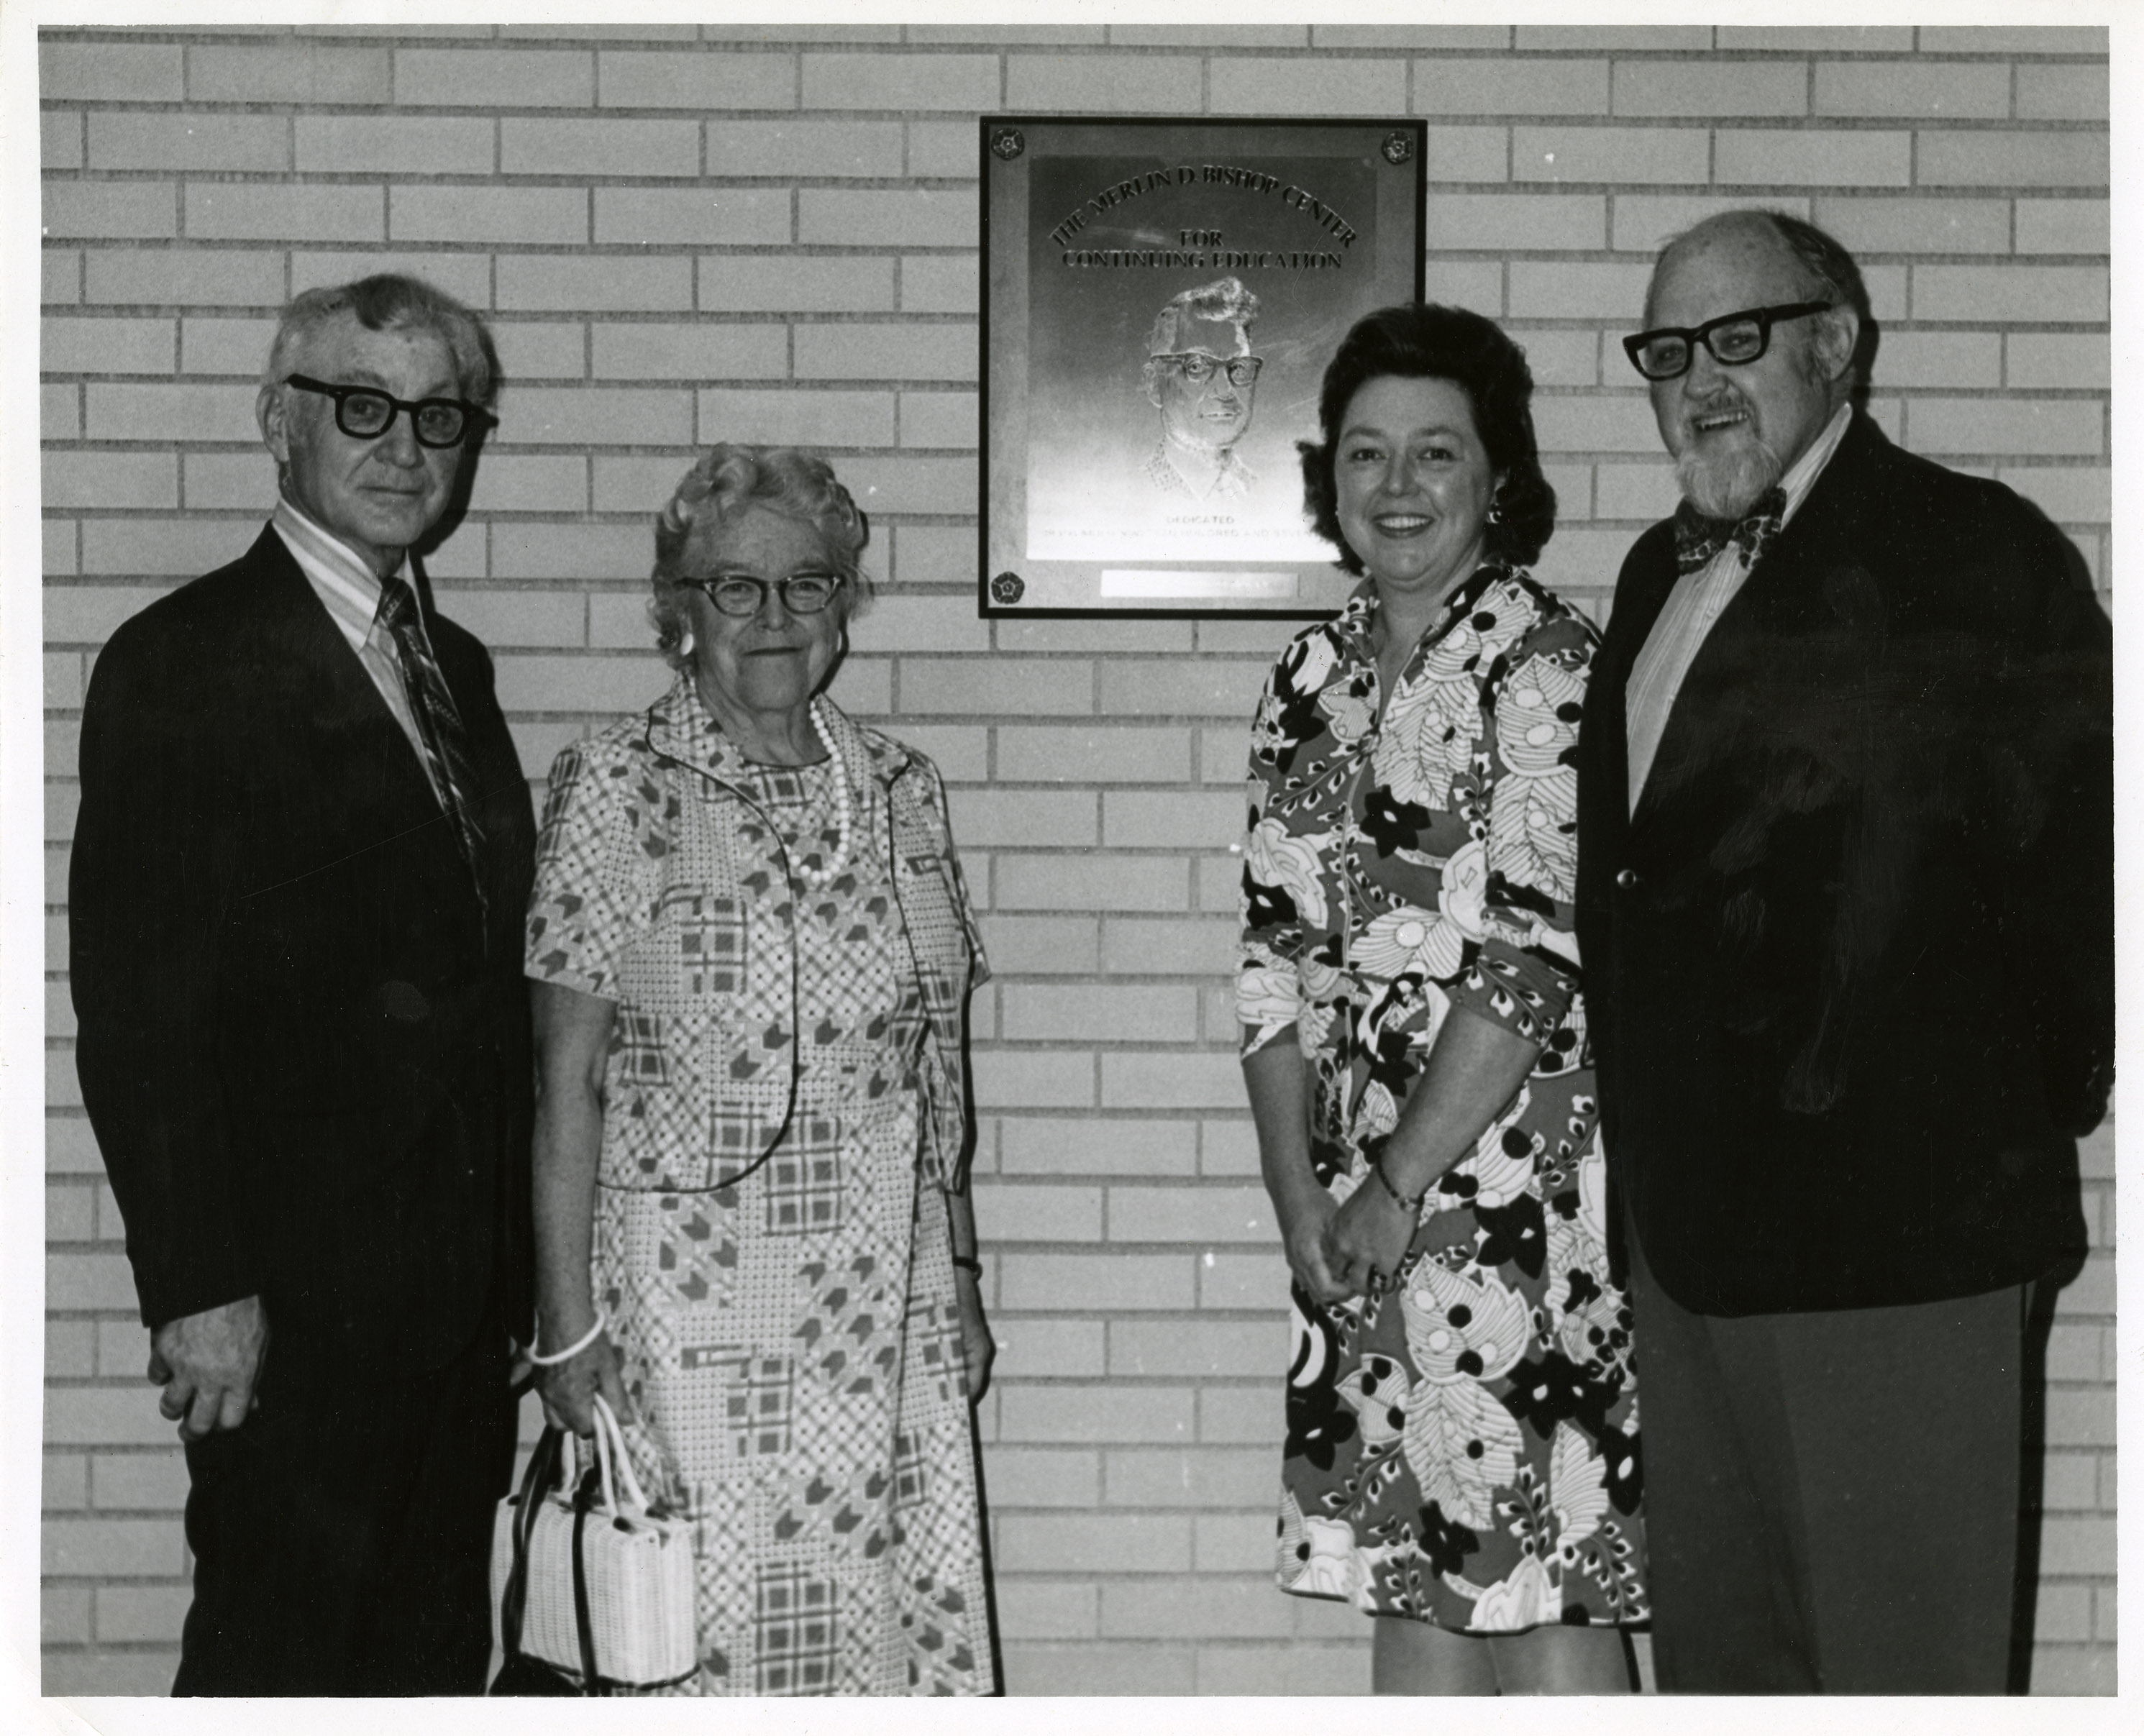 Merlin D. Bishop, his wife Dorothy and two unidentified people in the Bishop Center, undated